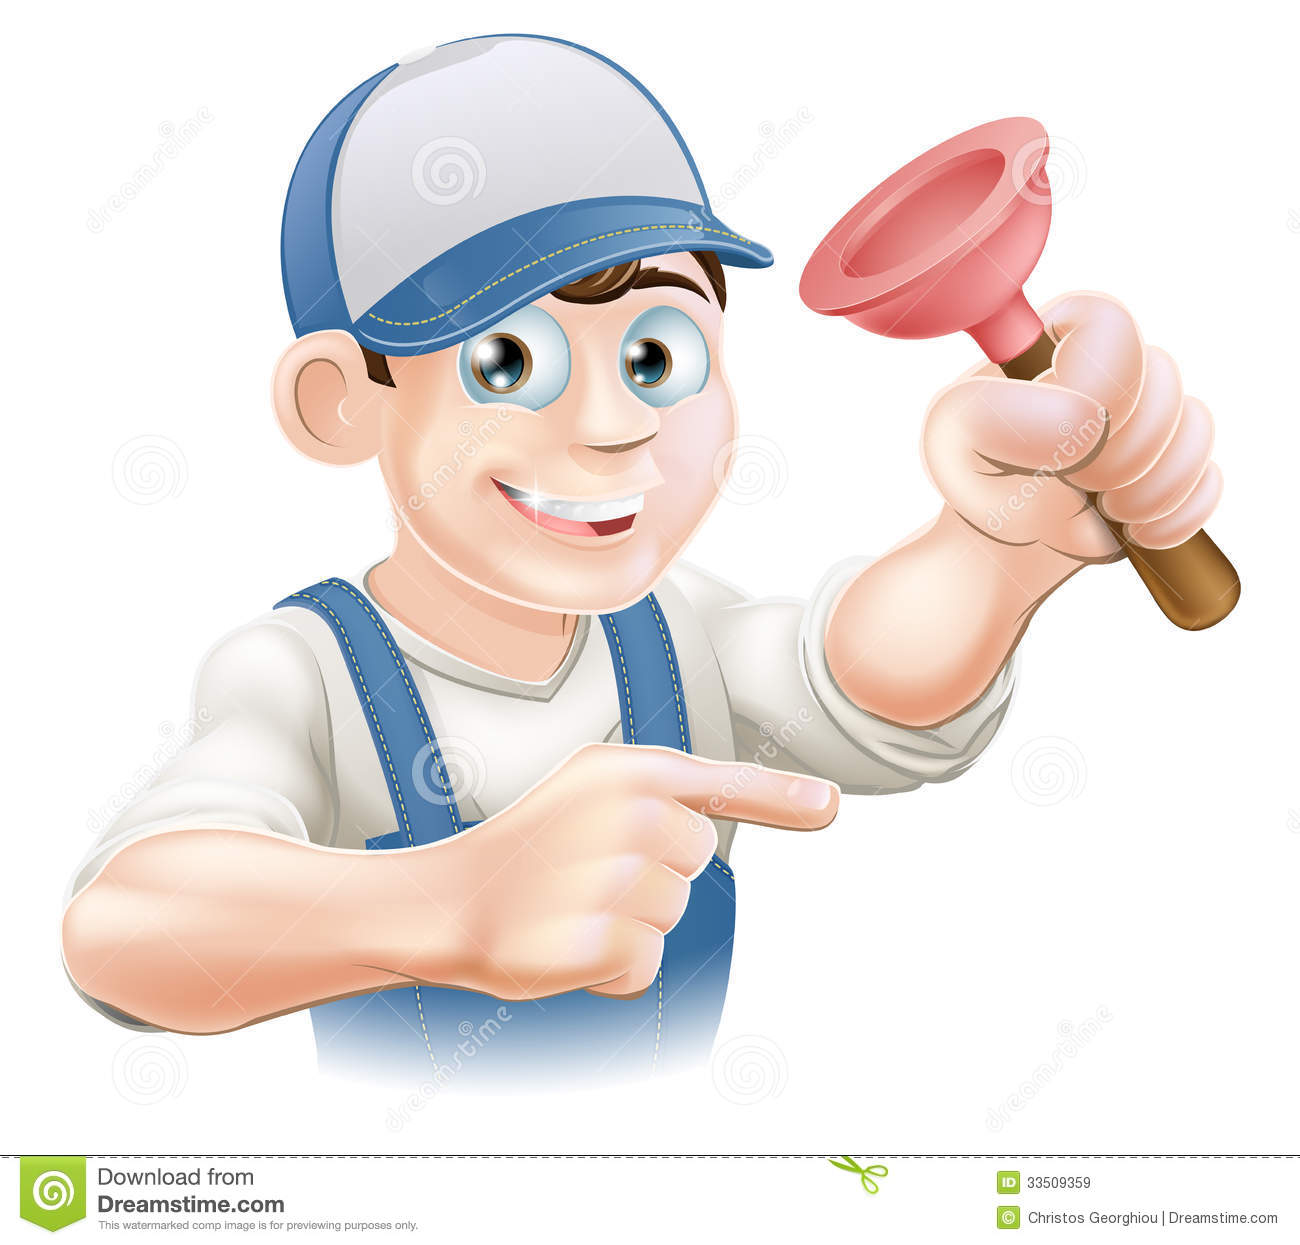 cartoon-janitor-plumber-holding-rubber-plunger-pointing-33509359.jpg